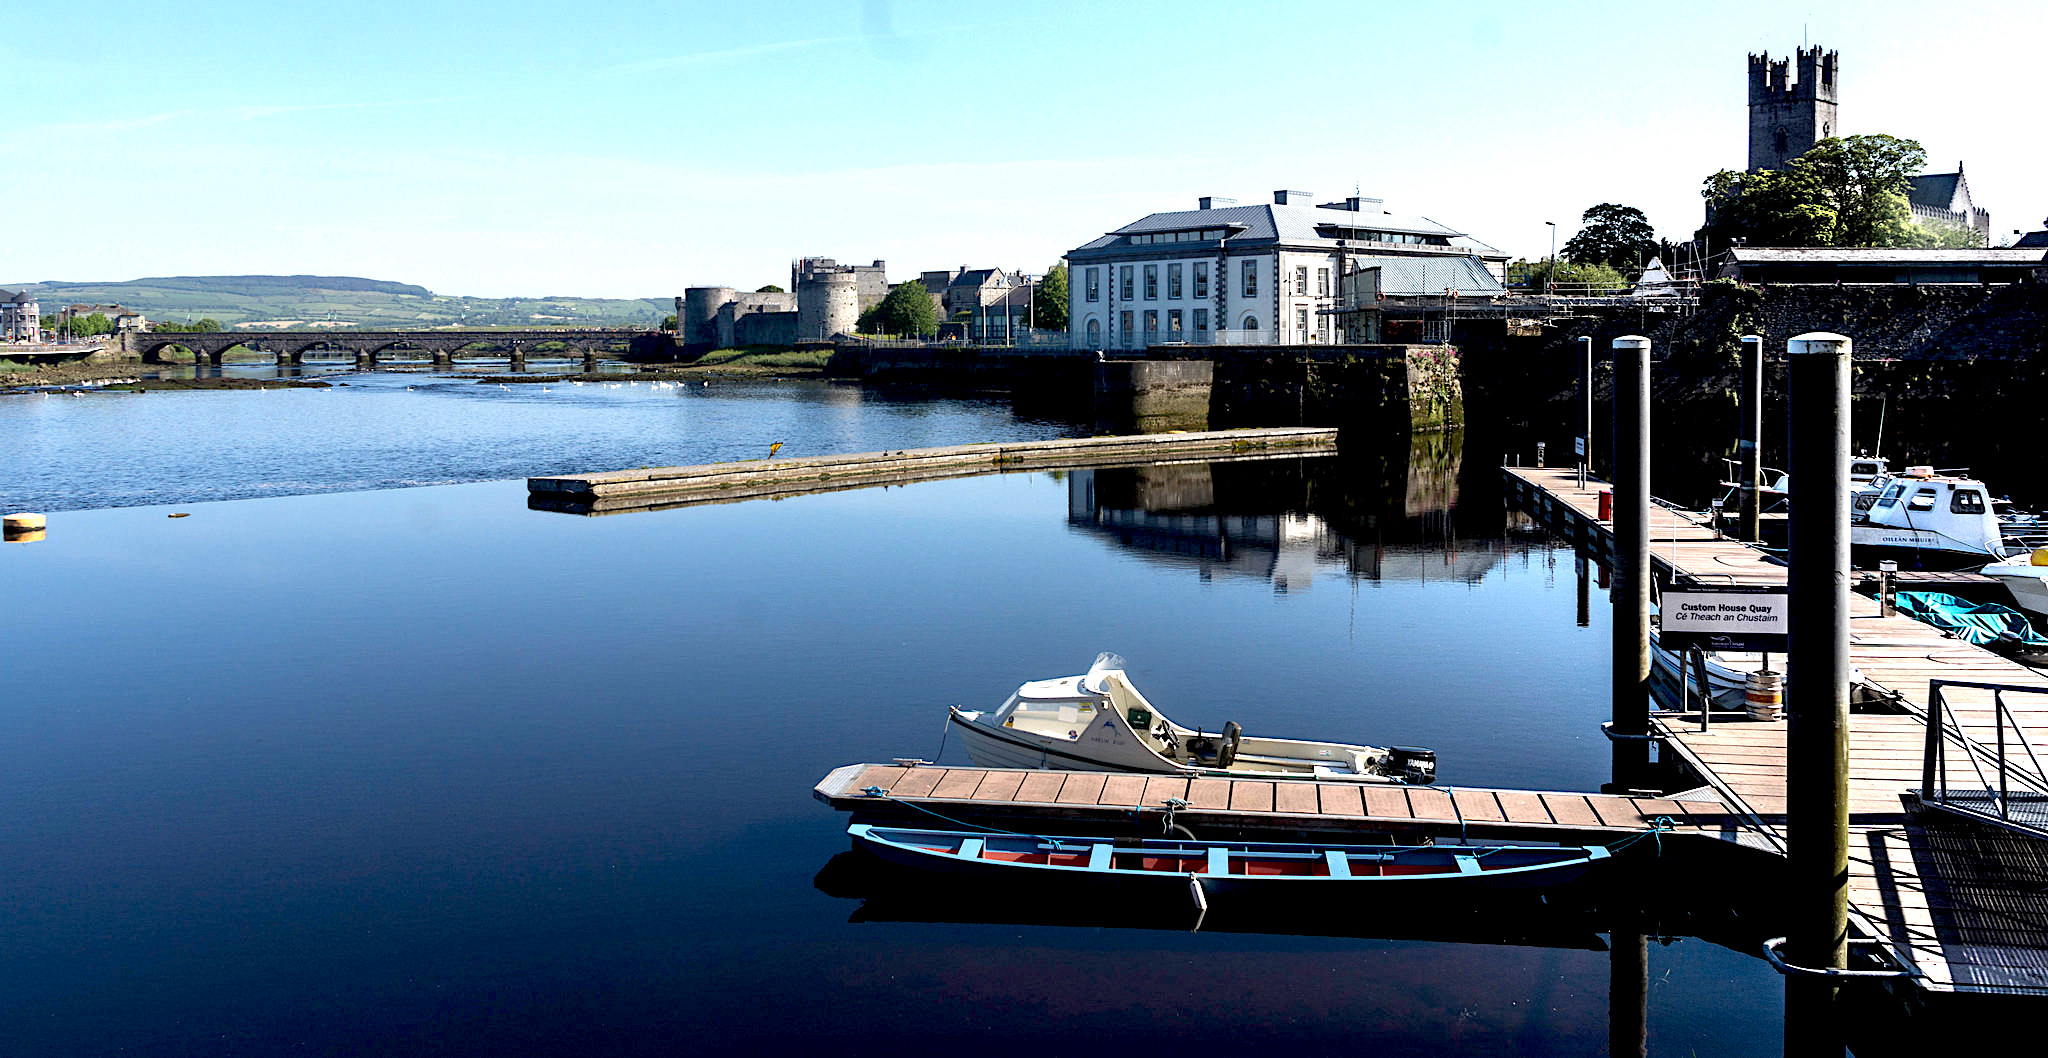 10 best places to visit on the River Shannon - Cruise Shannon